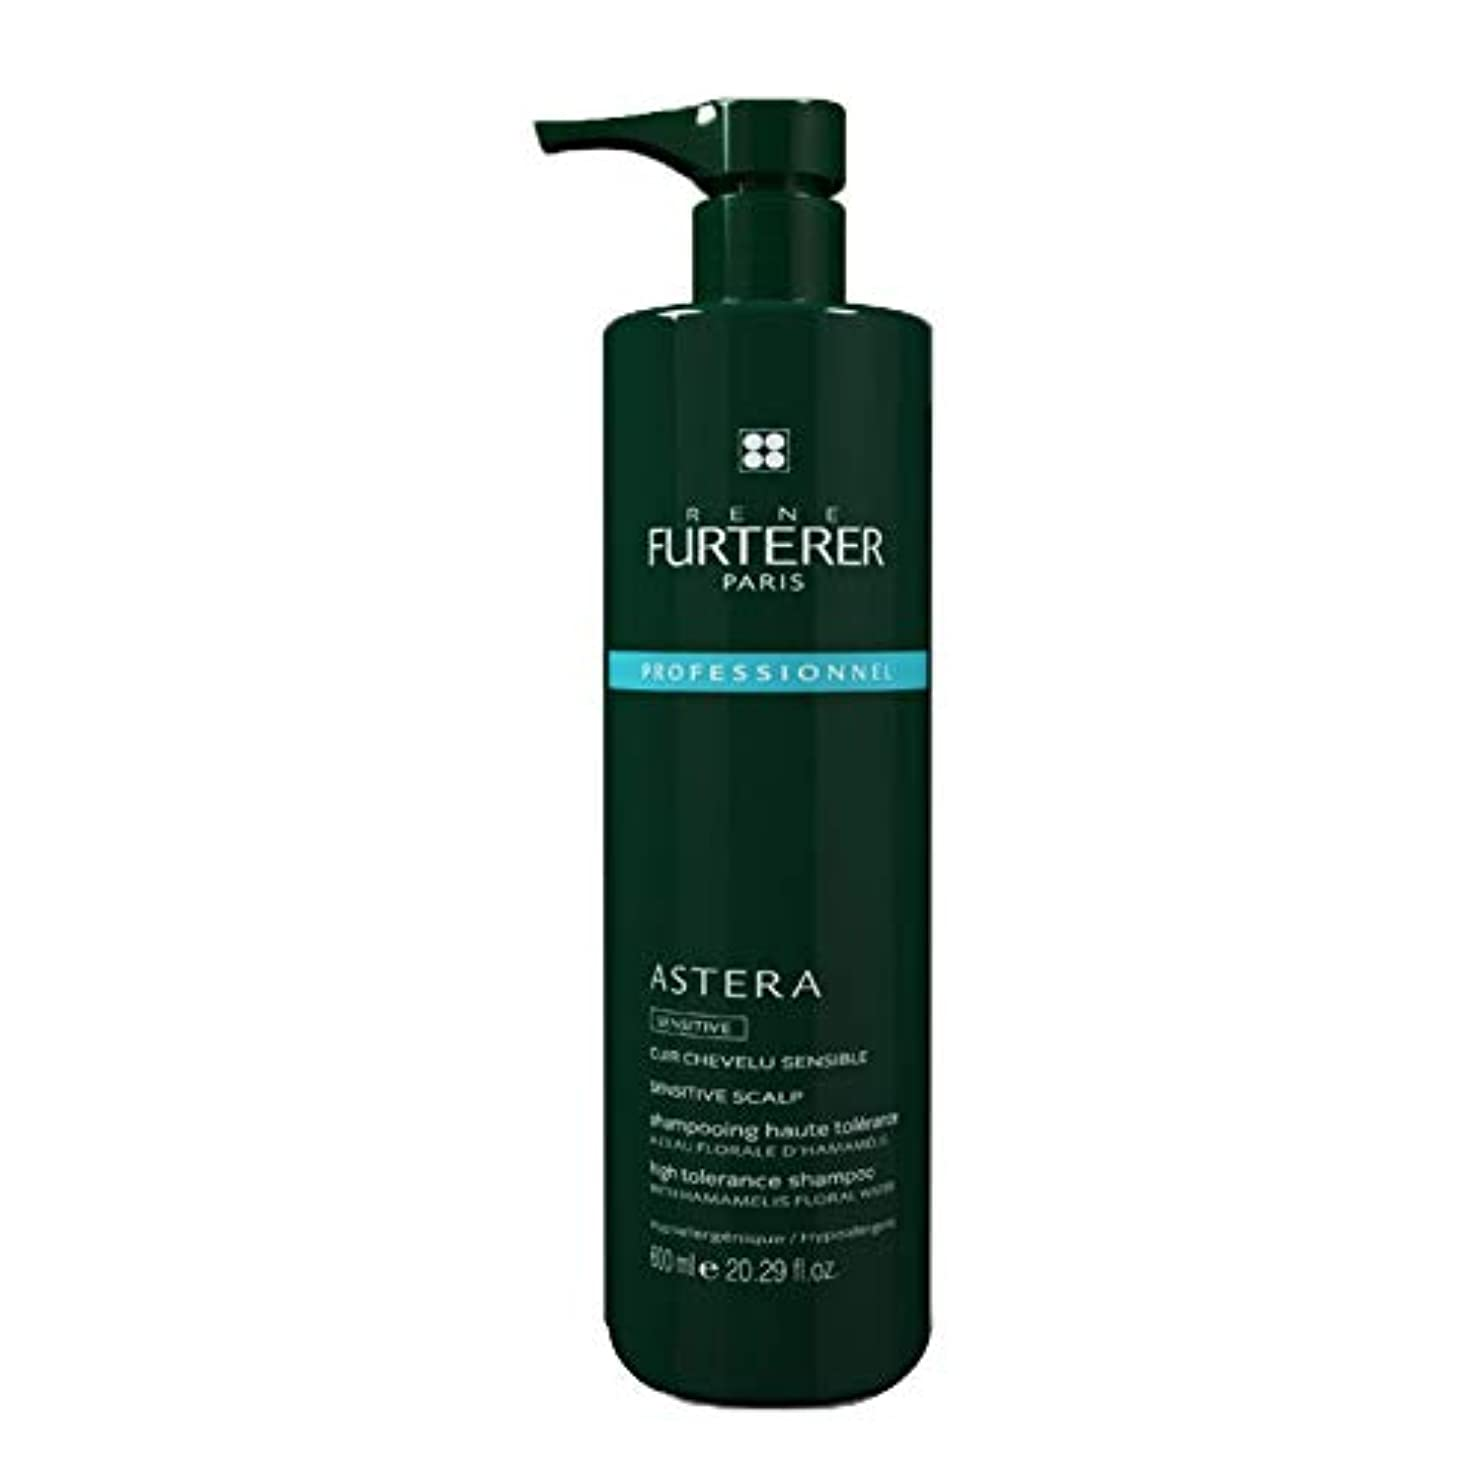 トラフィック発見陰気ルネ フルトレール Astera Sensitive High Tolerance Scalp Ritual Dermo-Protective Shampoo (Sensitive Scalp) 600ml/20.2oz並行輸入品